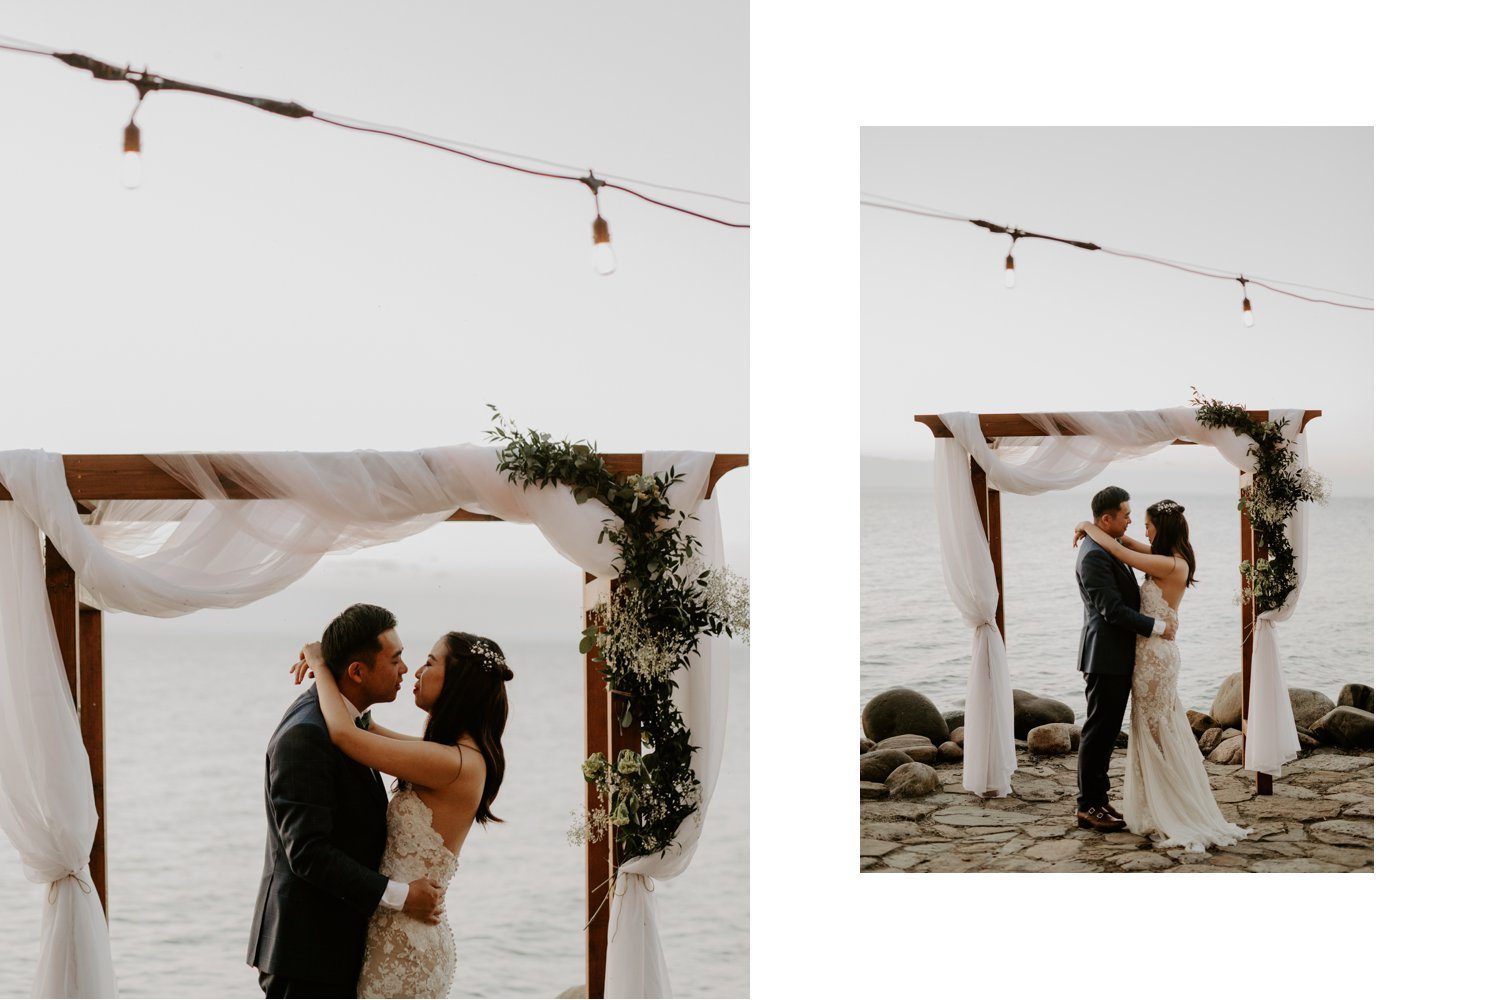 Serenity Cottage Wedding - portrait of bride and groom kissing at lakeside alter in Georgian Bay